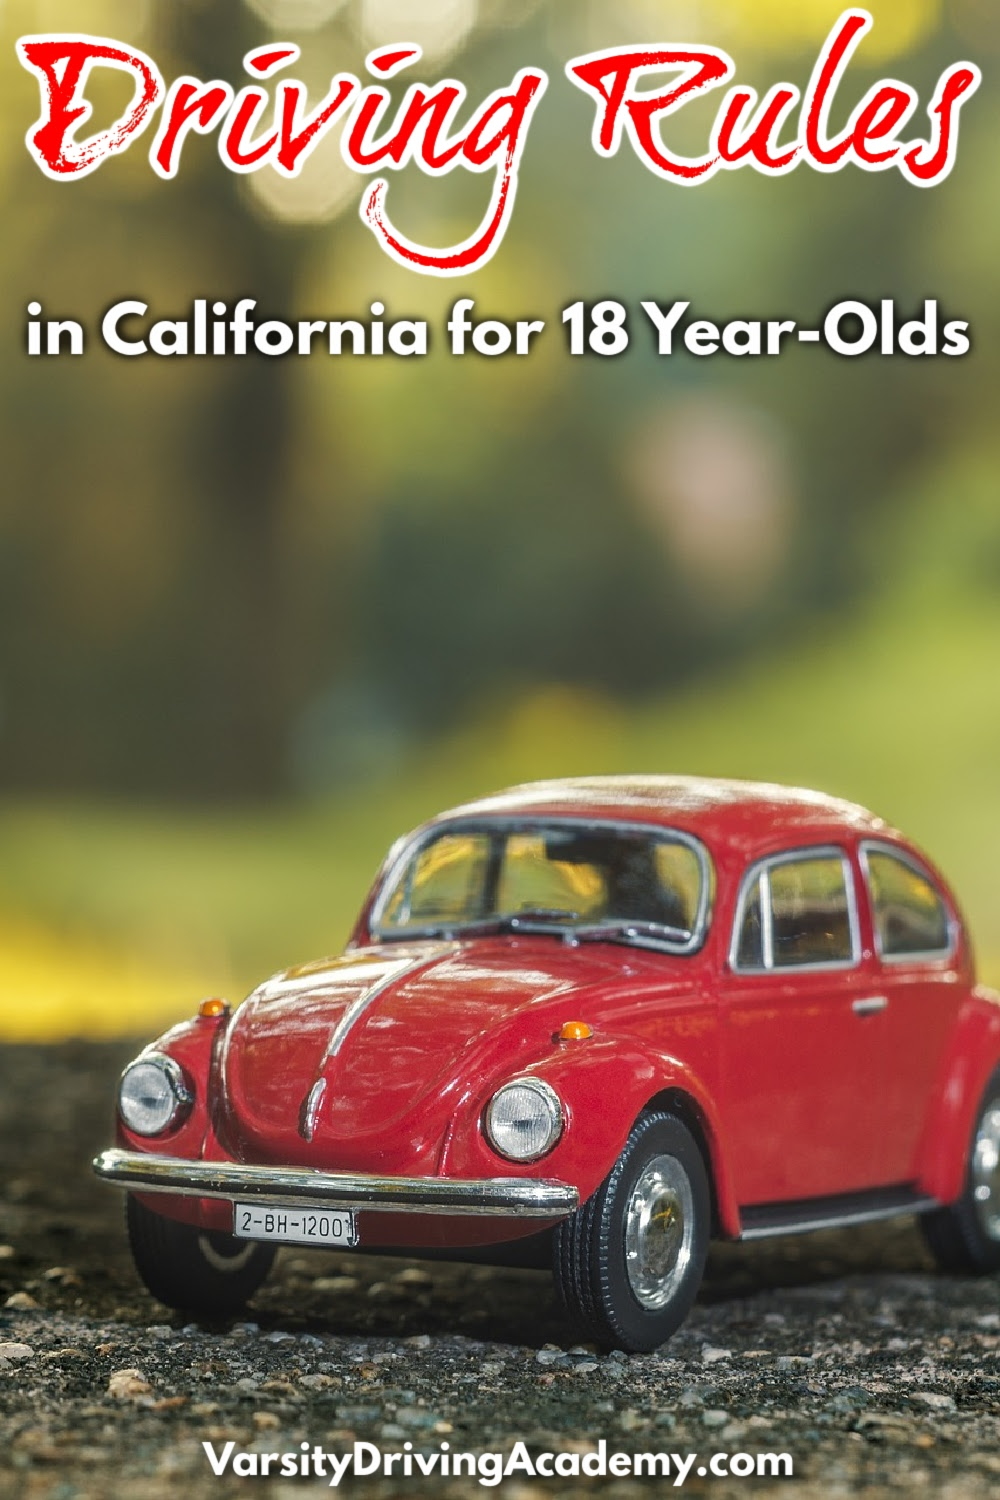 Many of the California driving rules for 18 year olds give a new sense of freedom and responsibility to teens and parents alike.